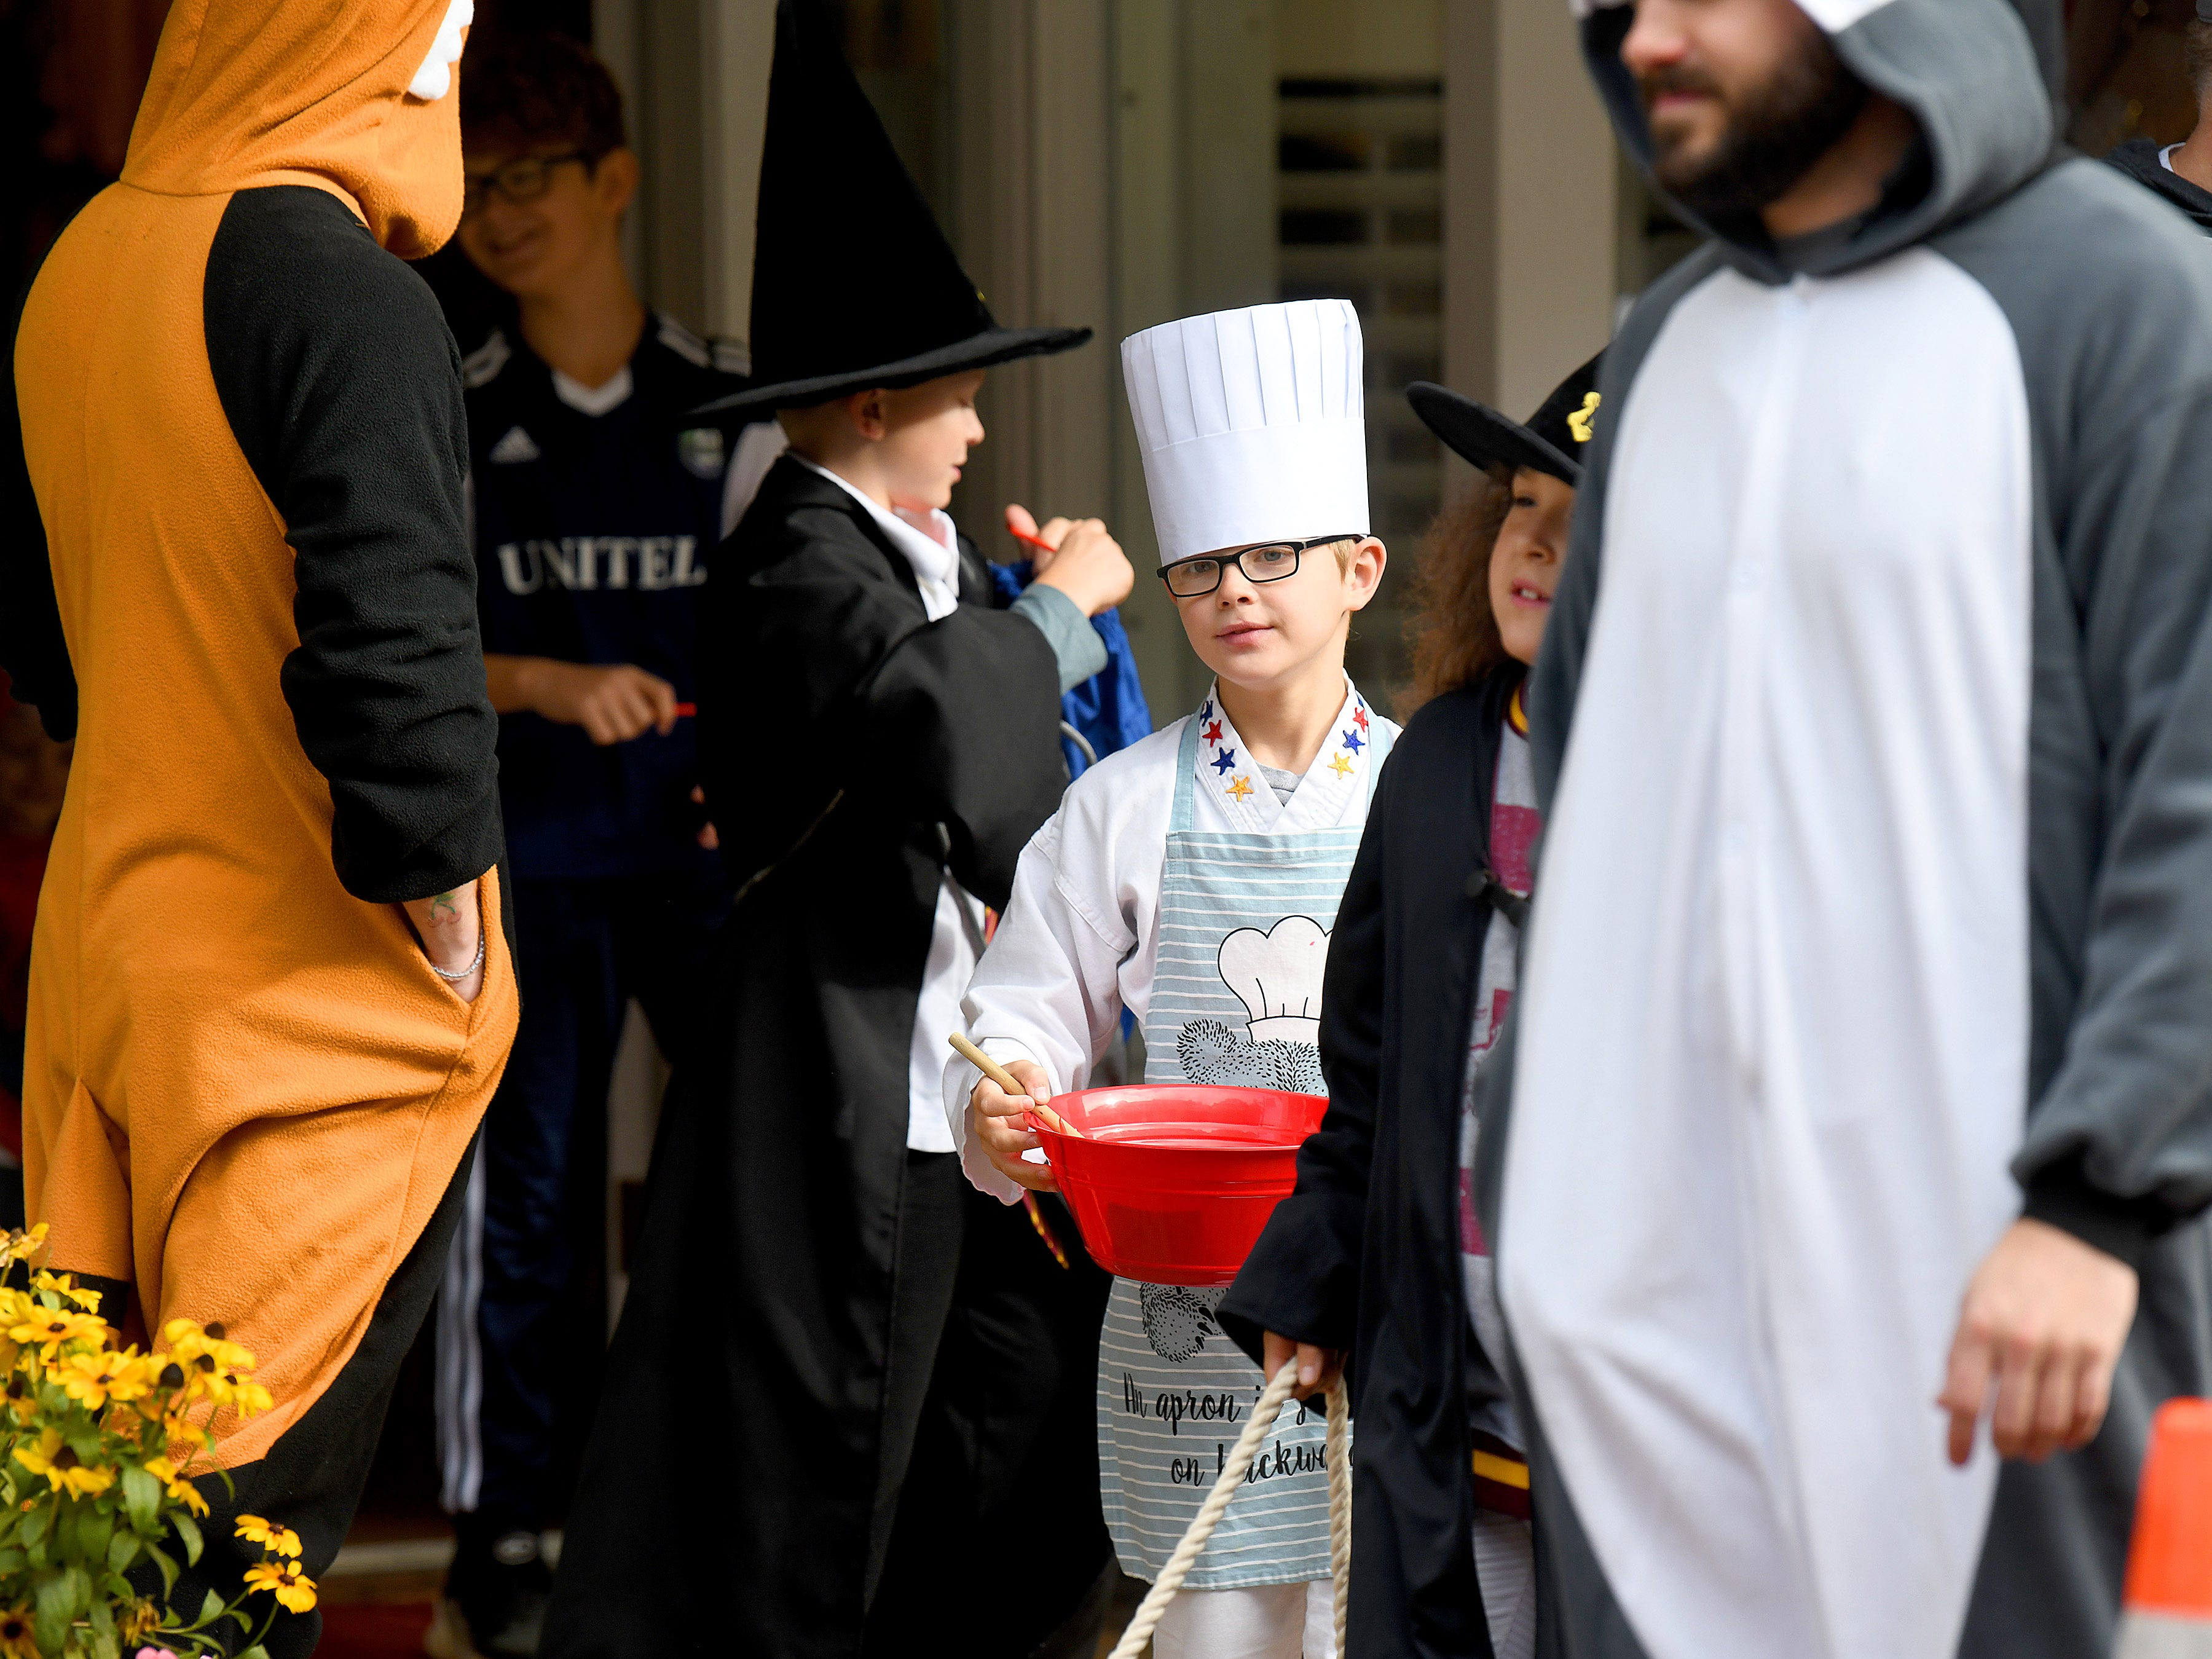 A chef stirs the contents of a mixing bowl while trick-or-treating in downtown Staunton on Saturday, Oct. 27, 2018.